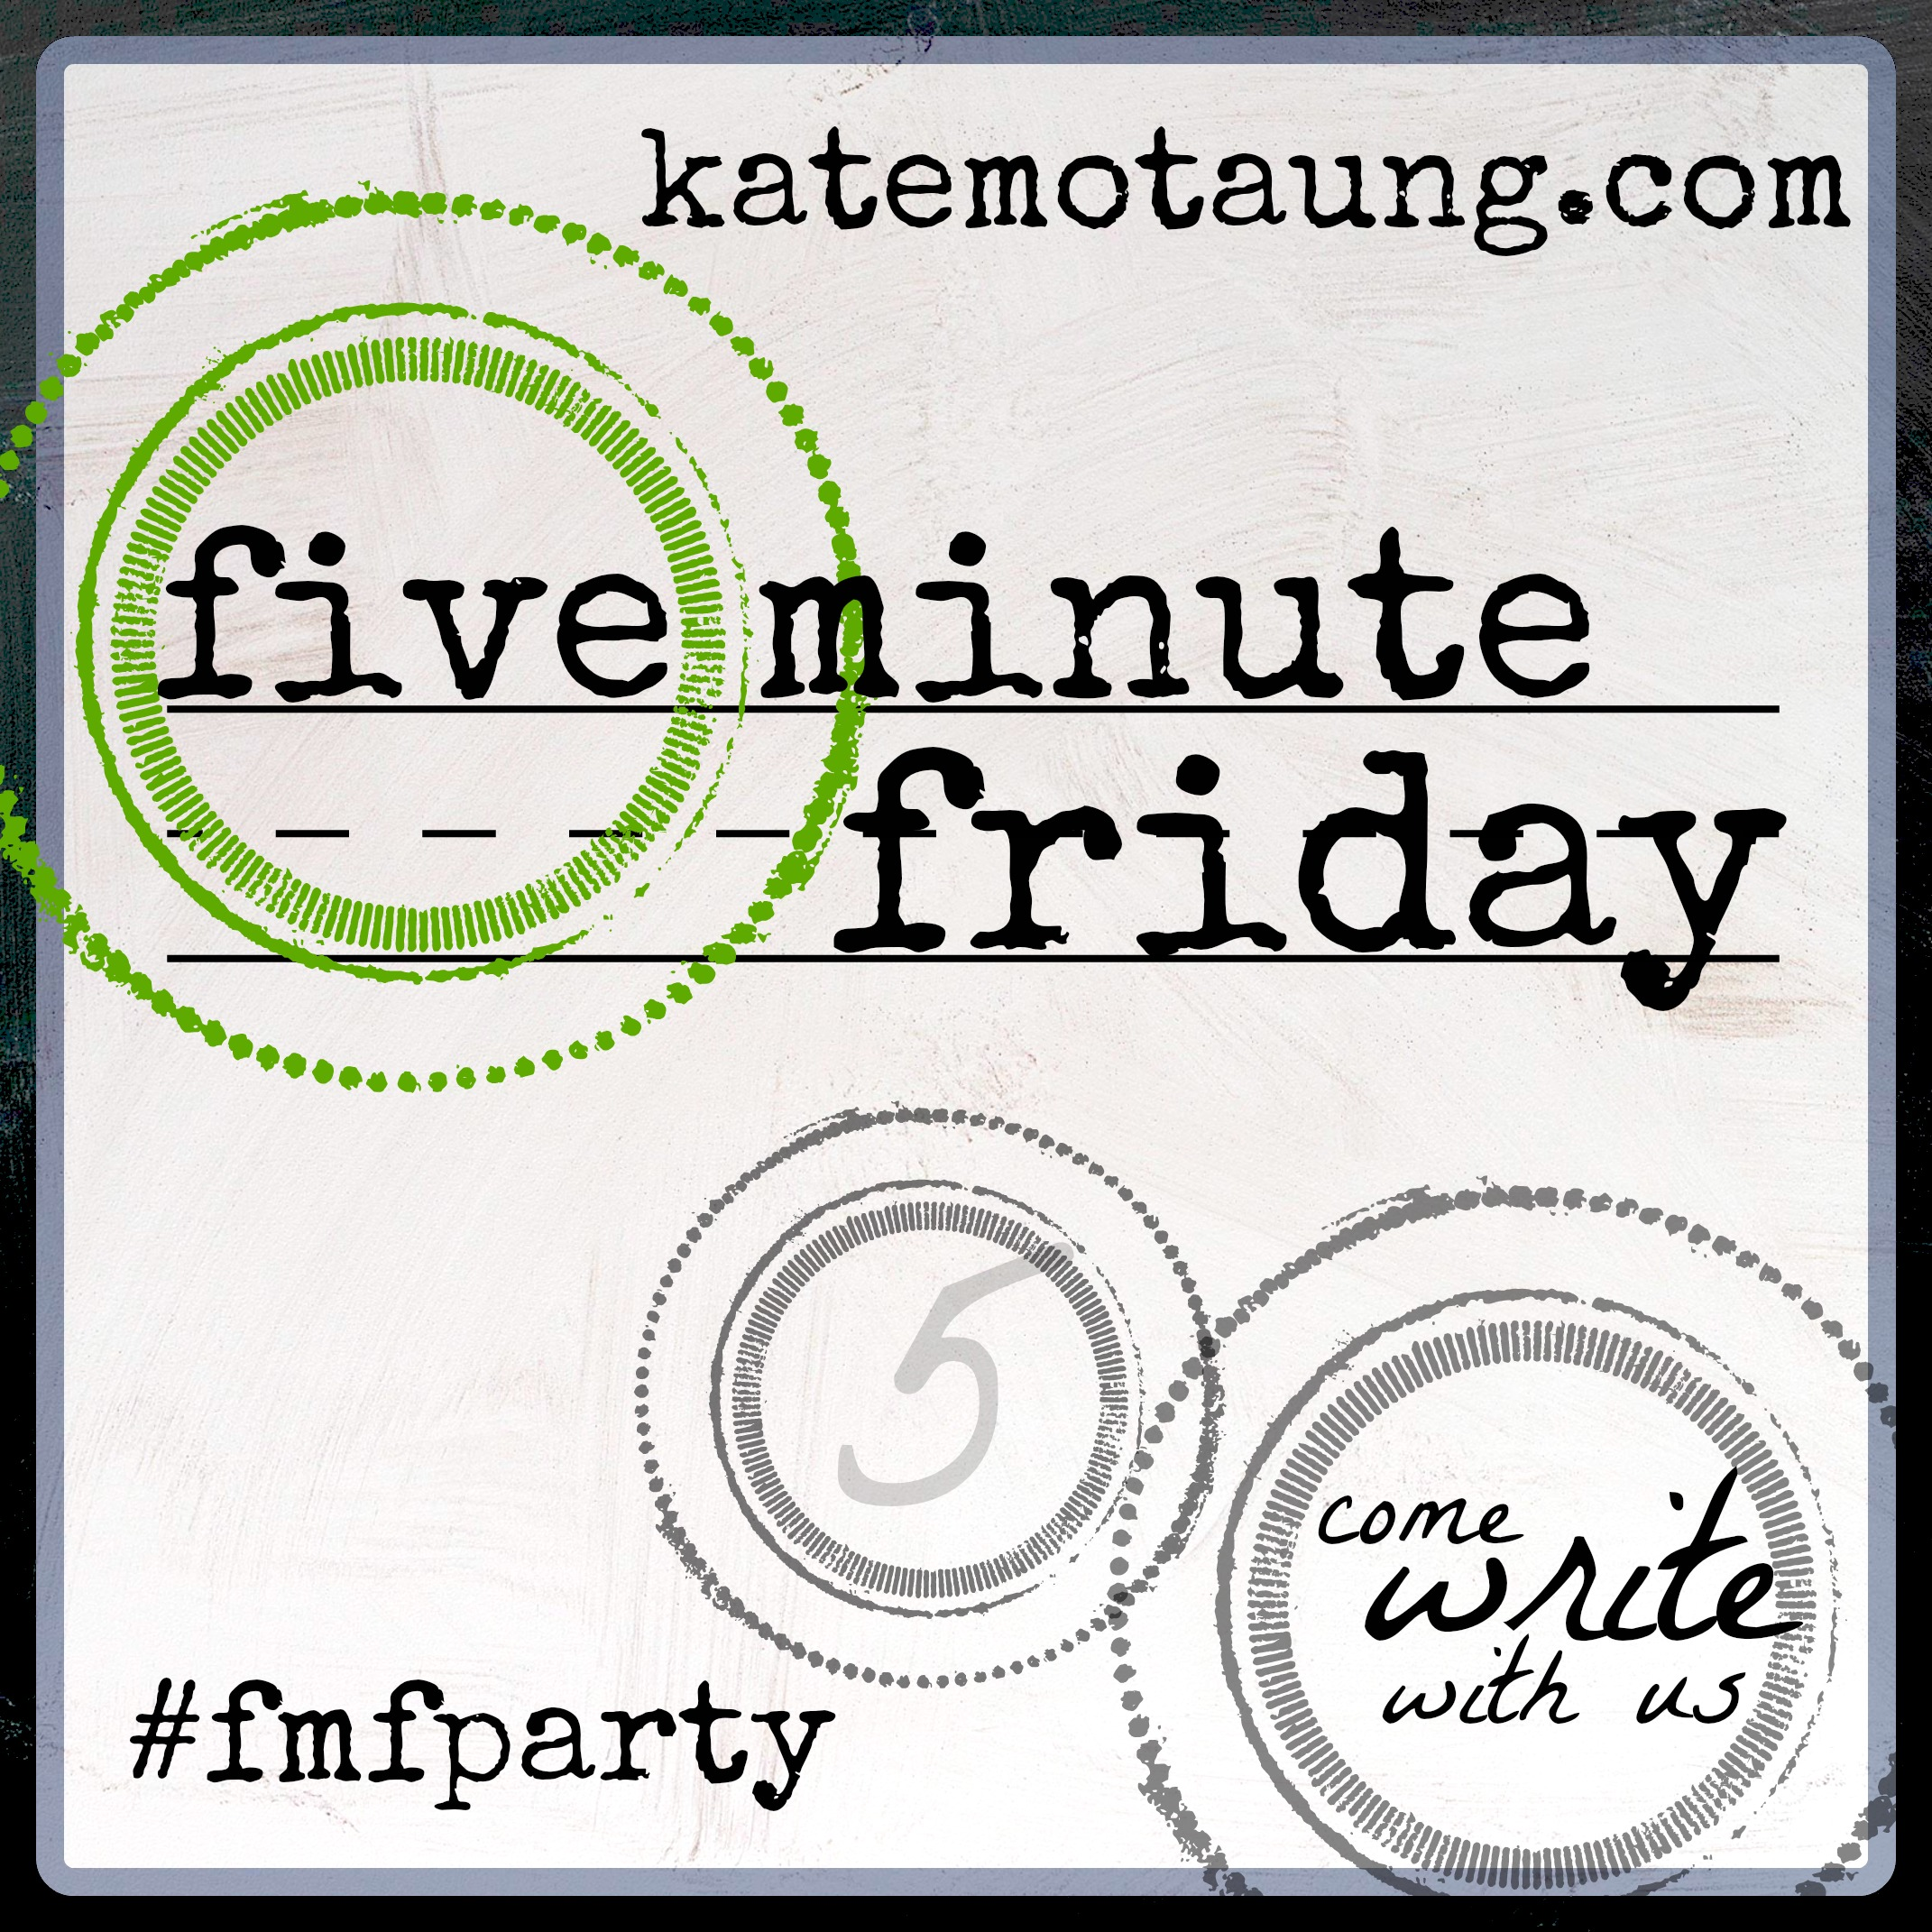 http://katemotaung.com/2016/06/09/five-minute-friday-want/